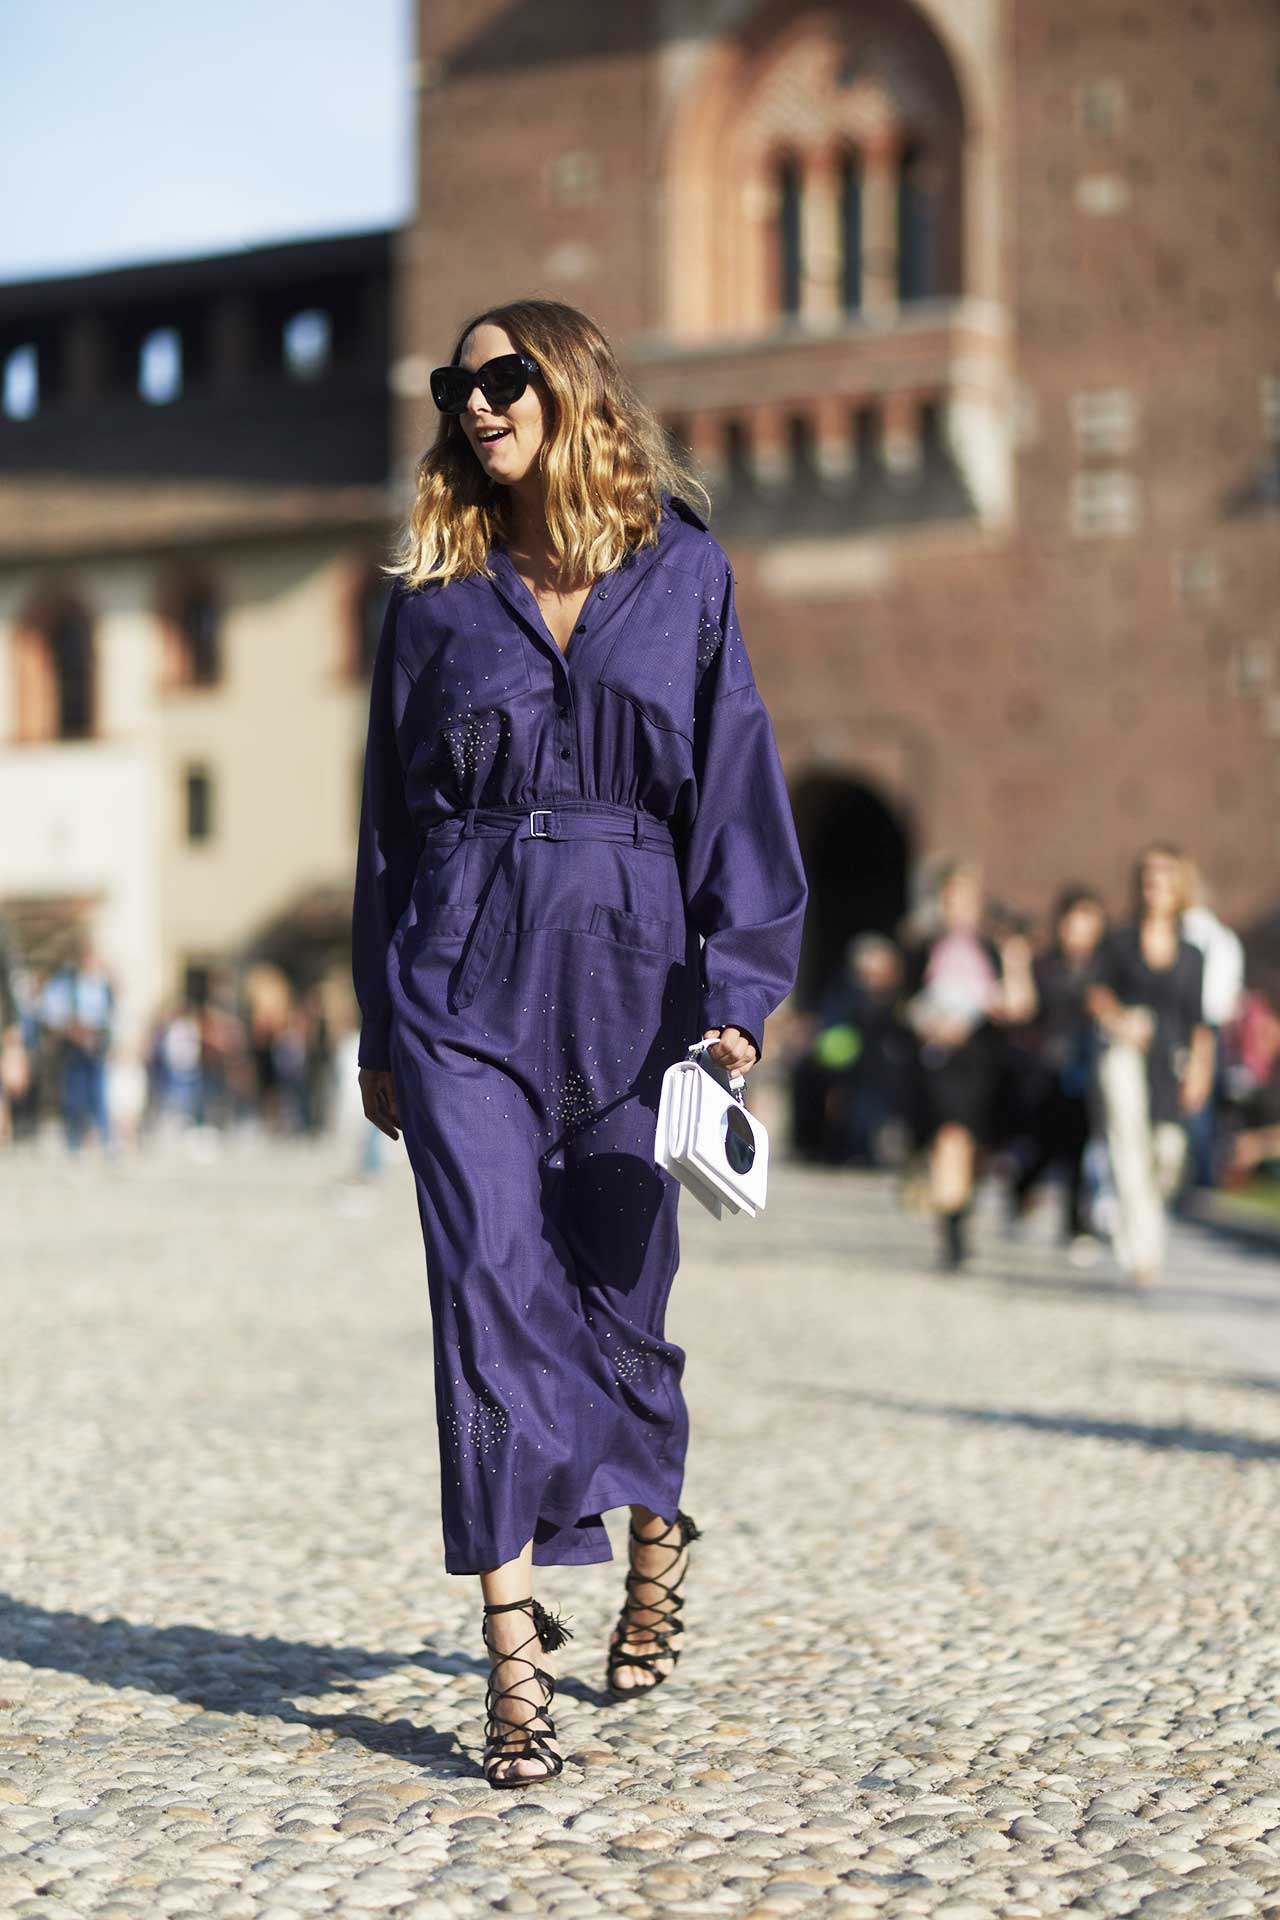 milan-fashion-week-street-style-spring-2018-candela-novembre-purple-coat